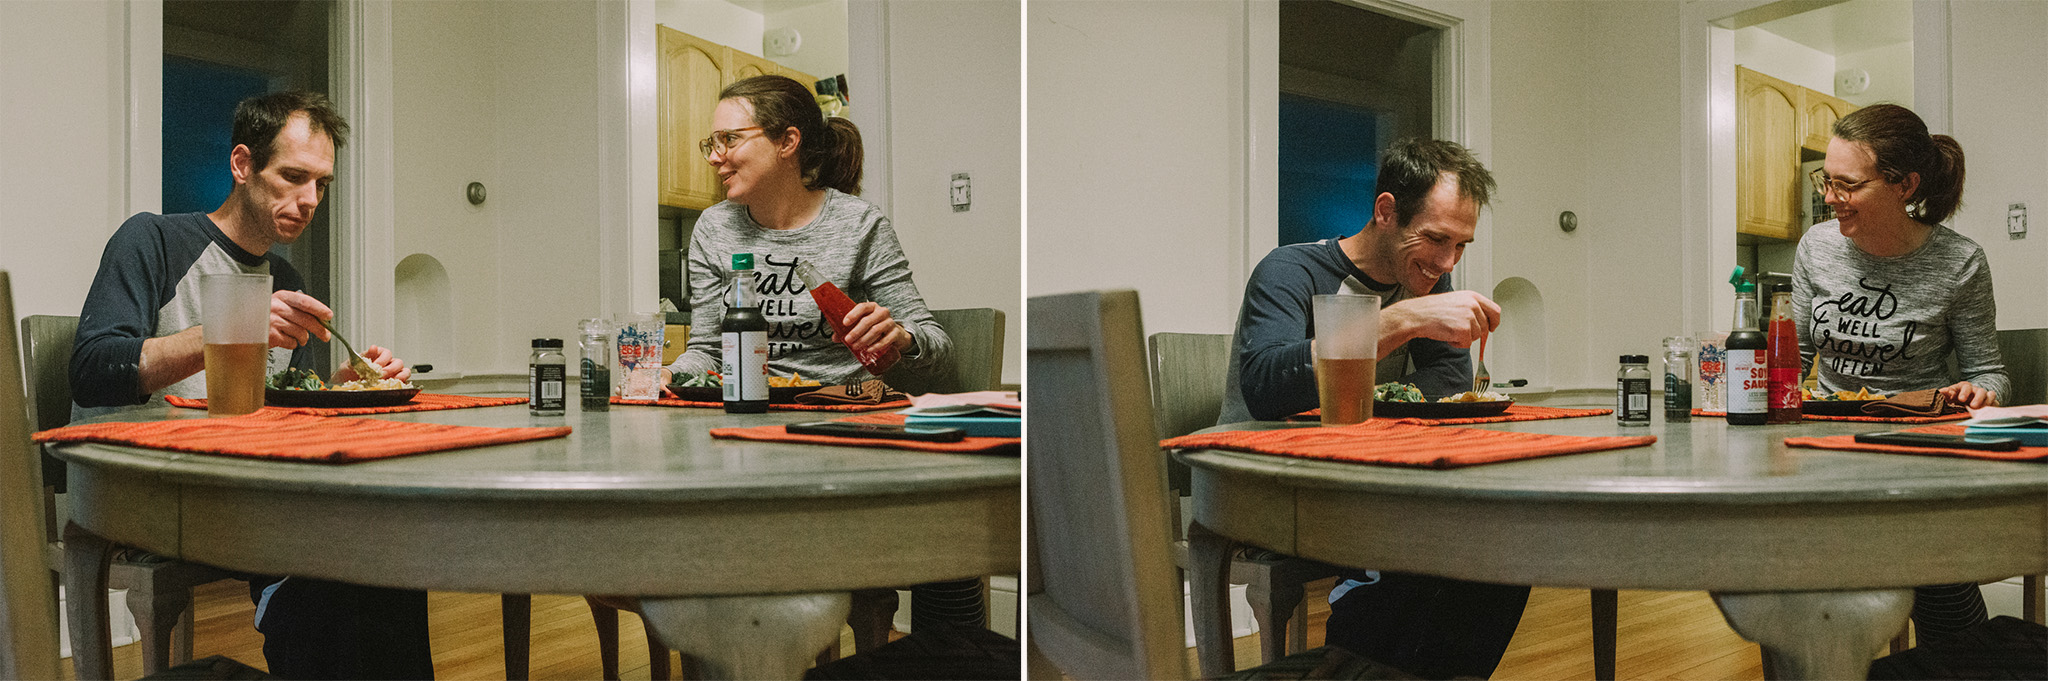 May 8: This is also us on any given weeknight. I was into selfies with the camera timer in May. Apparently.